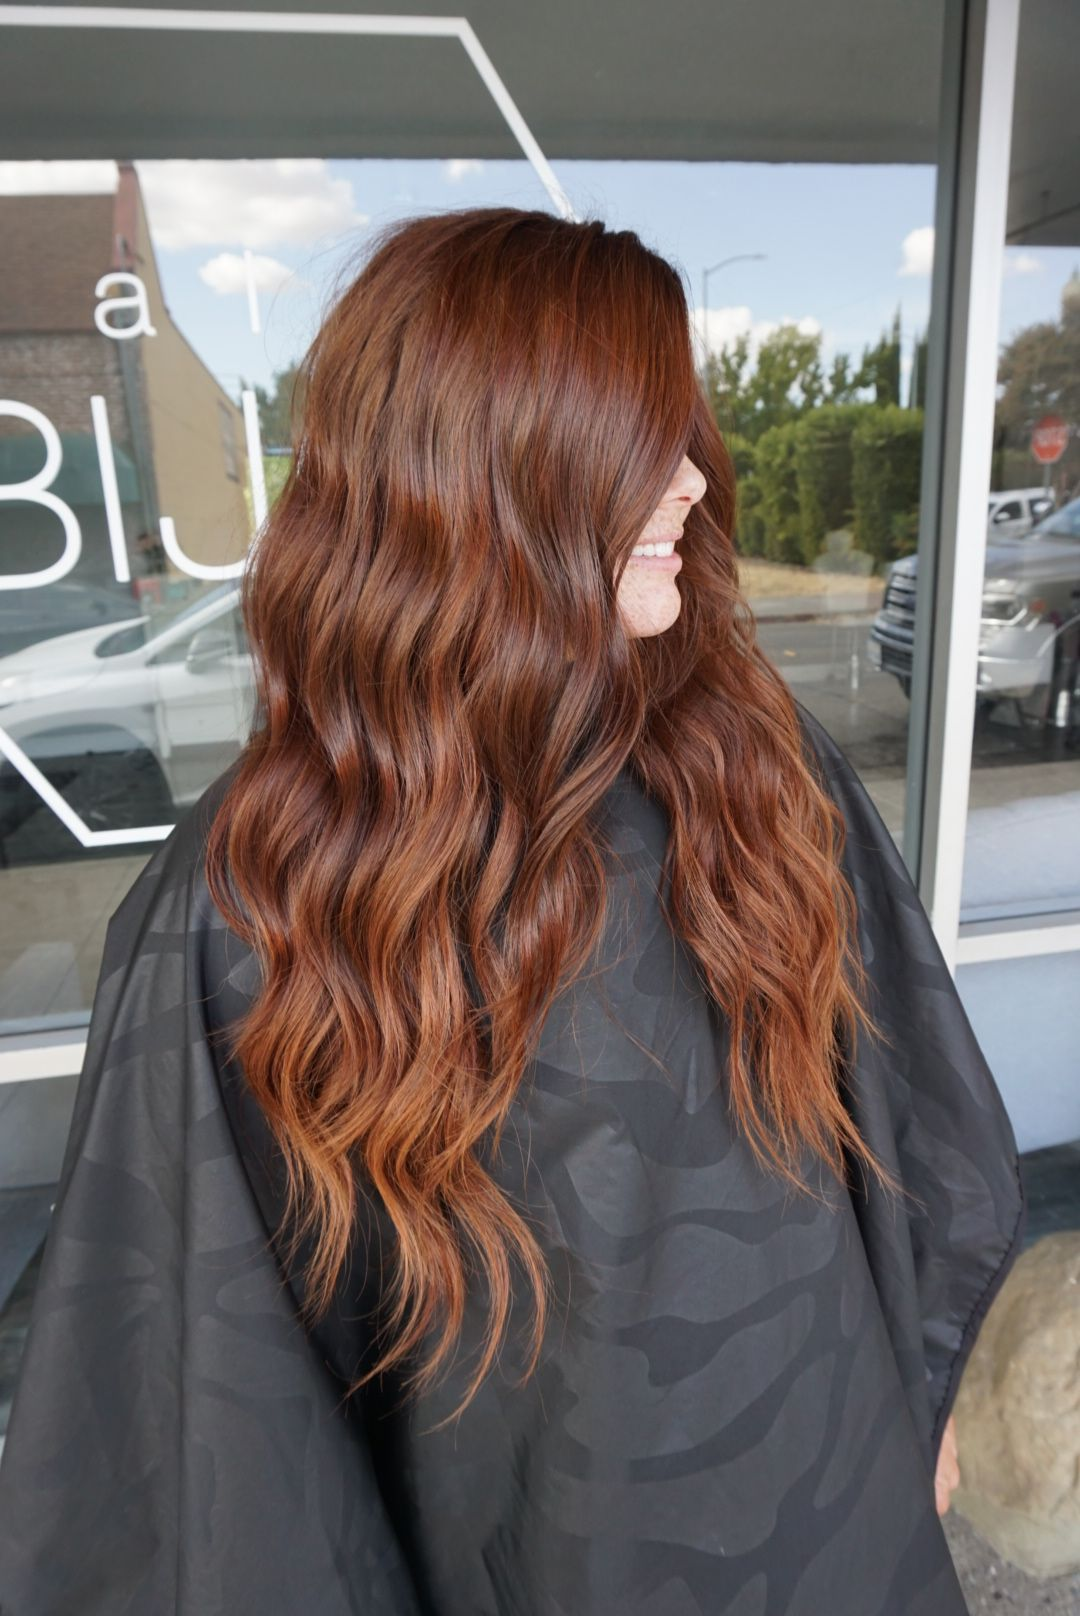 Fall hair color NBR extensions in 2020 Amber hair, Hair